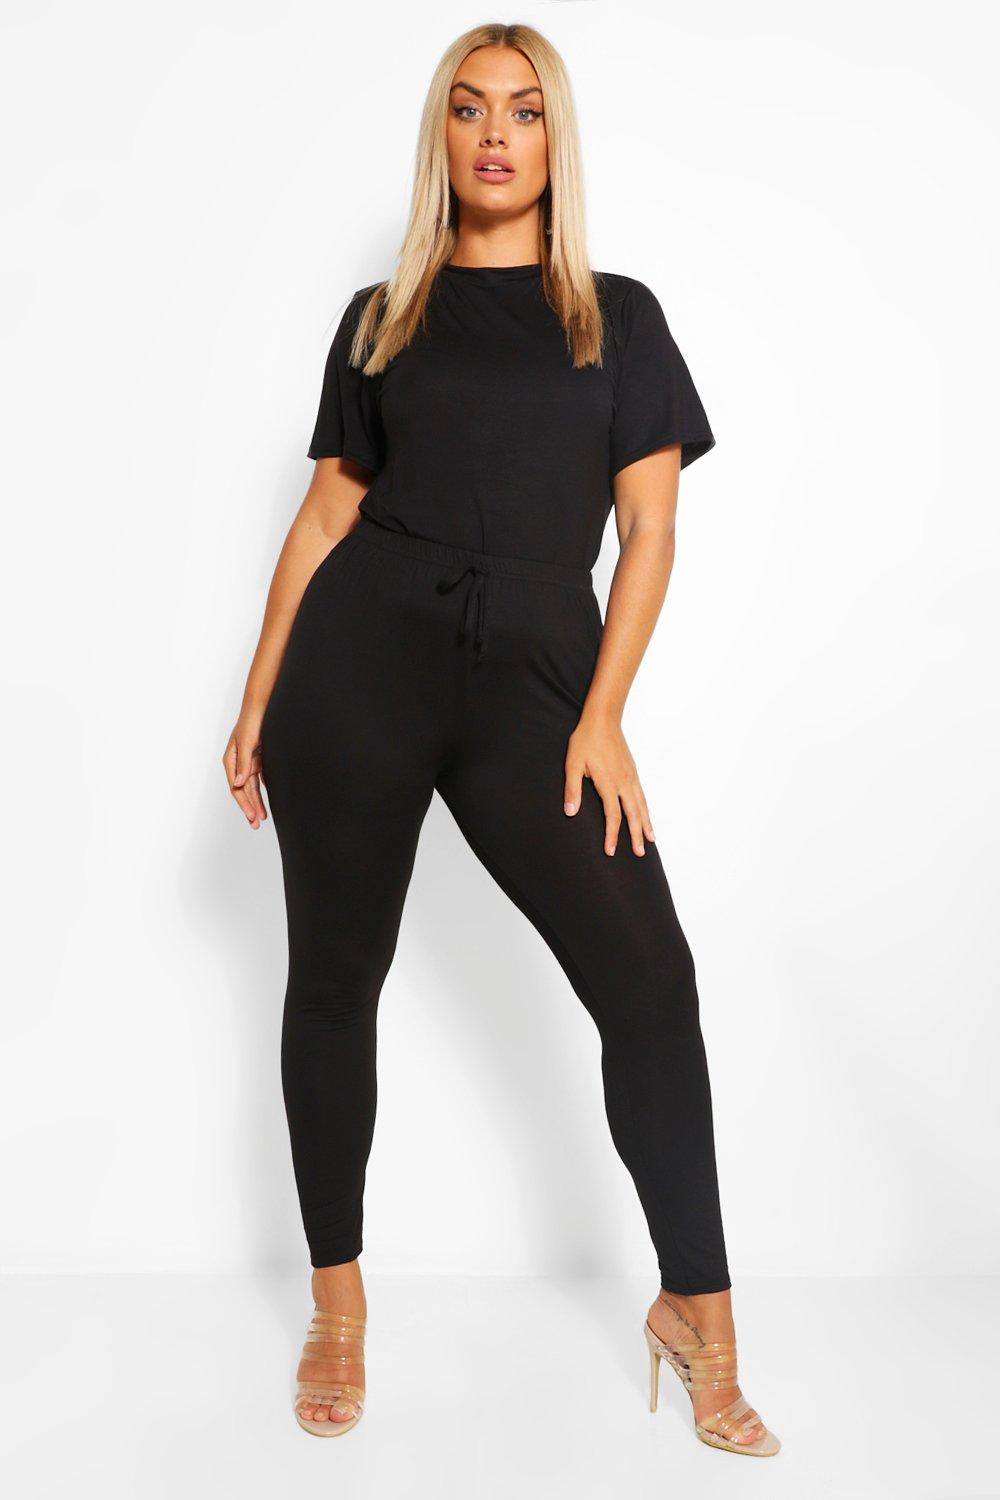 Plus Jersey T-Shirt + Legging Co-Ord 7